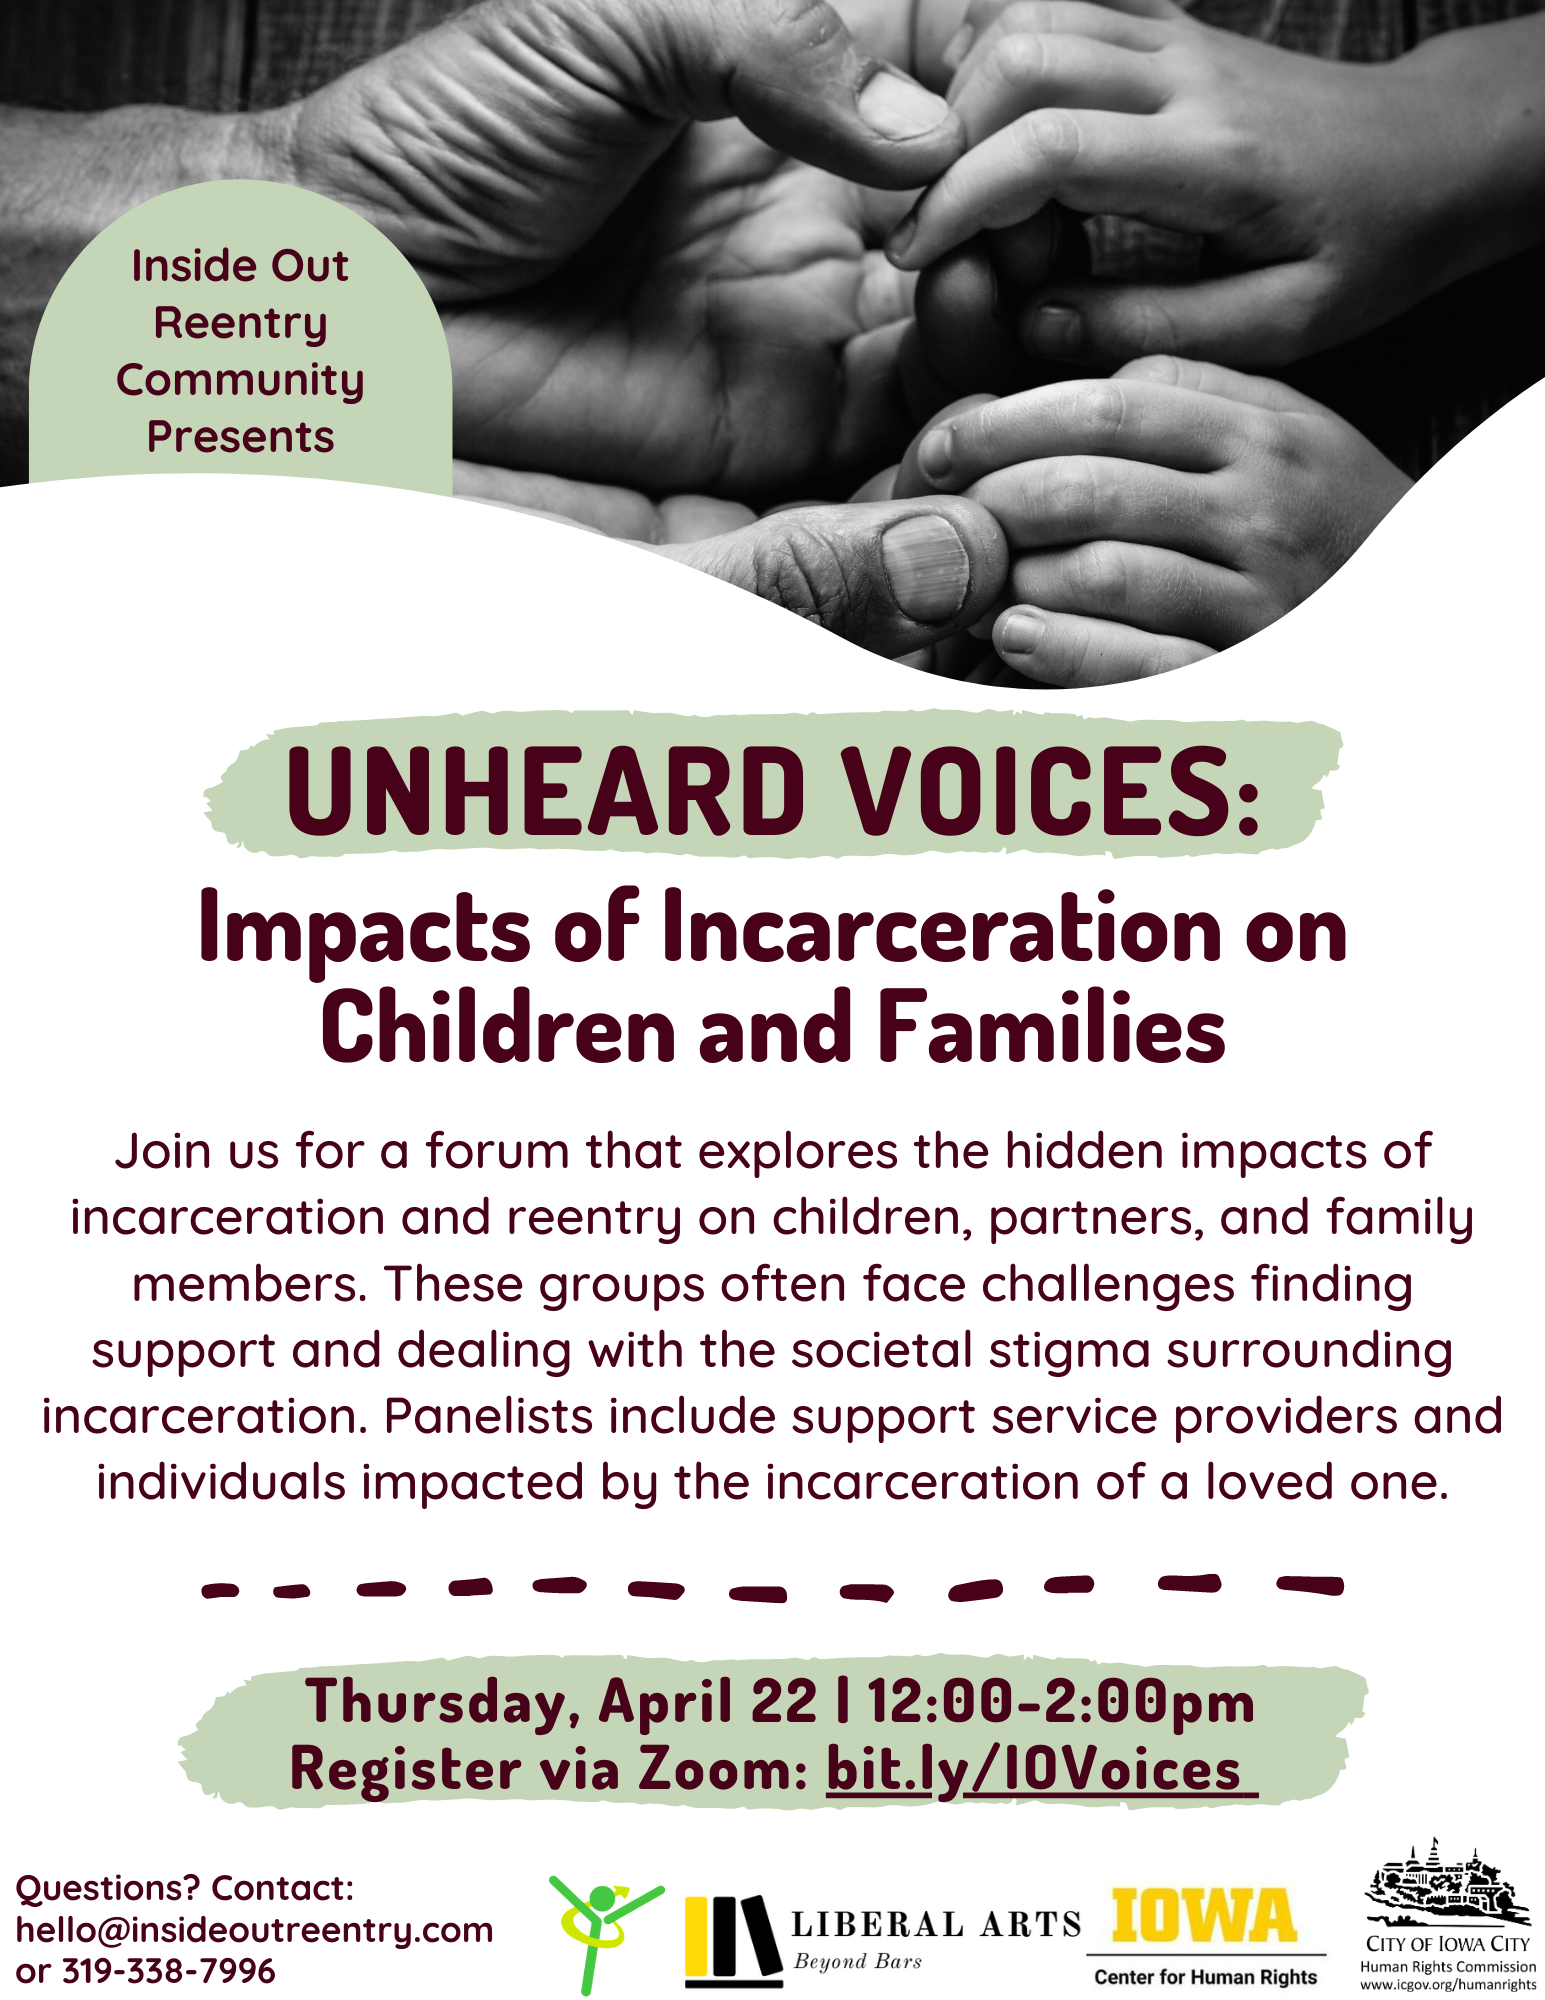 Inside Out Reentry Community presents Unheard Voices: Impacts of Incarceration on Children and Families. Join us for a forum that explores the hidden impacts of incarceration and reentry on children, partners, and family members.